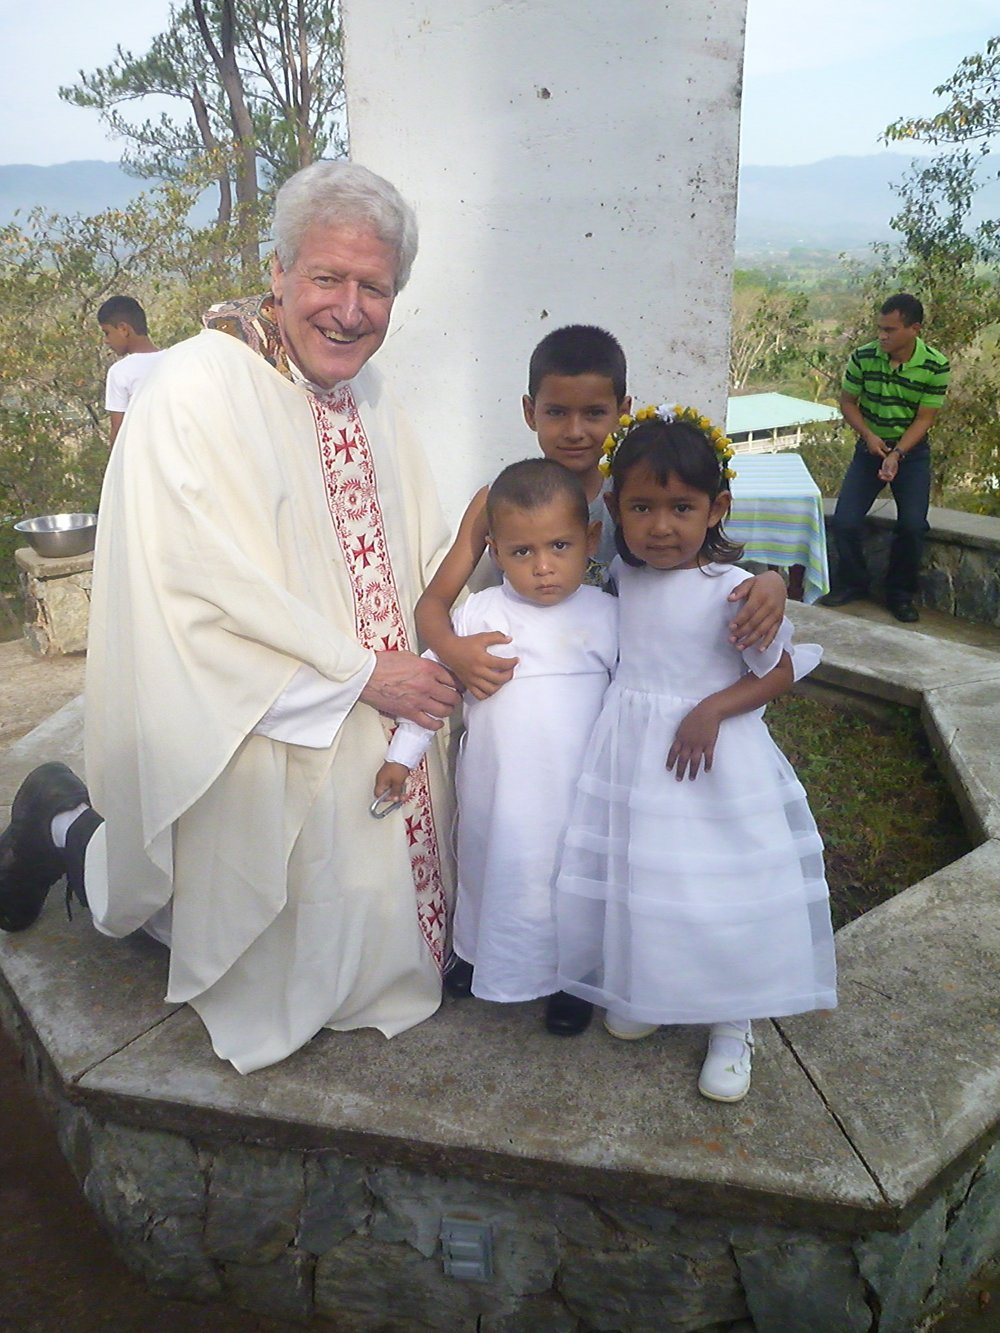 Perla and her brothers with Fr. Dennis not long after their arrival